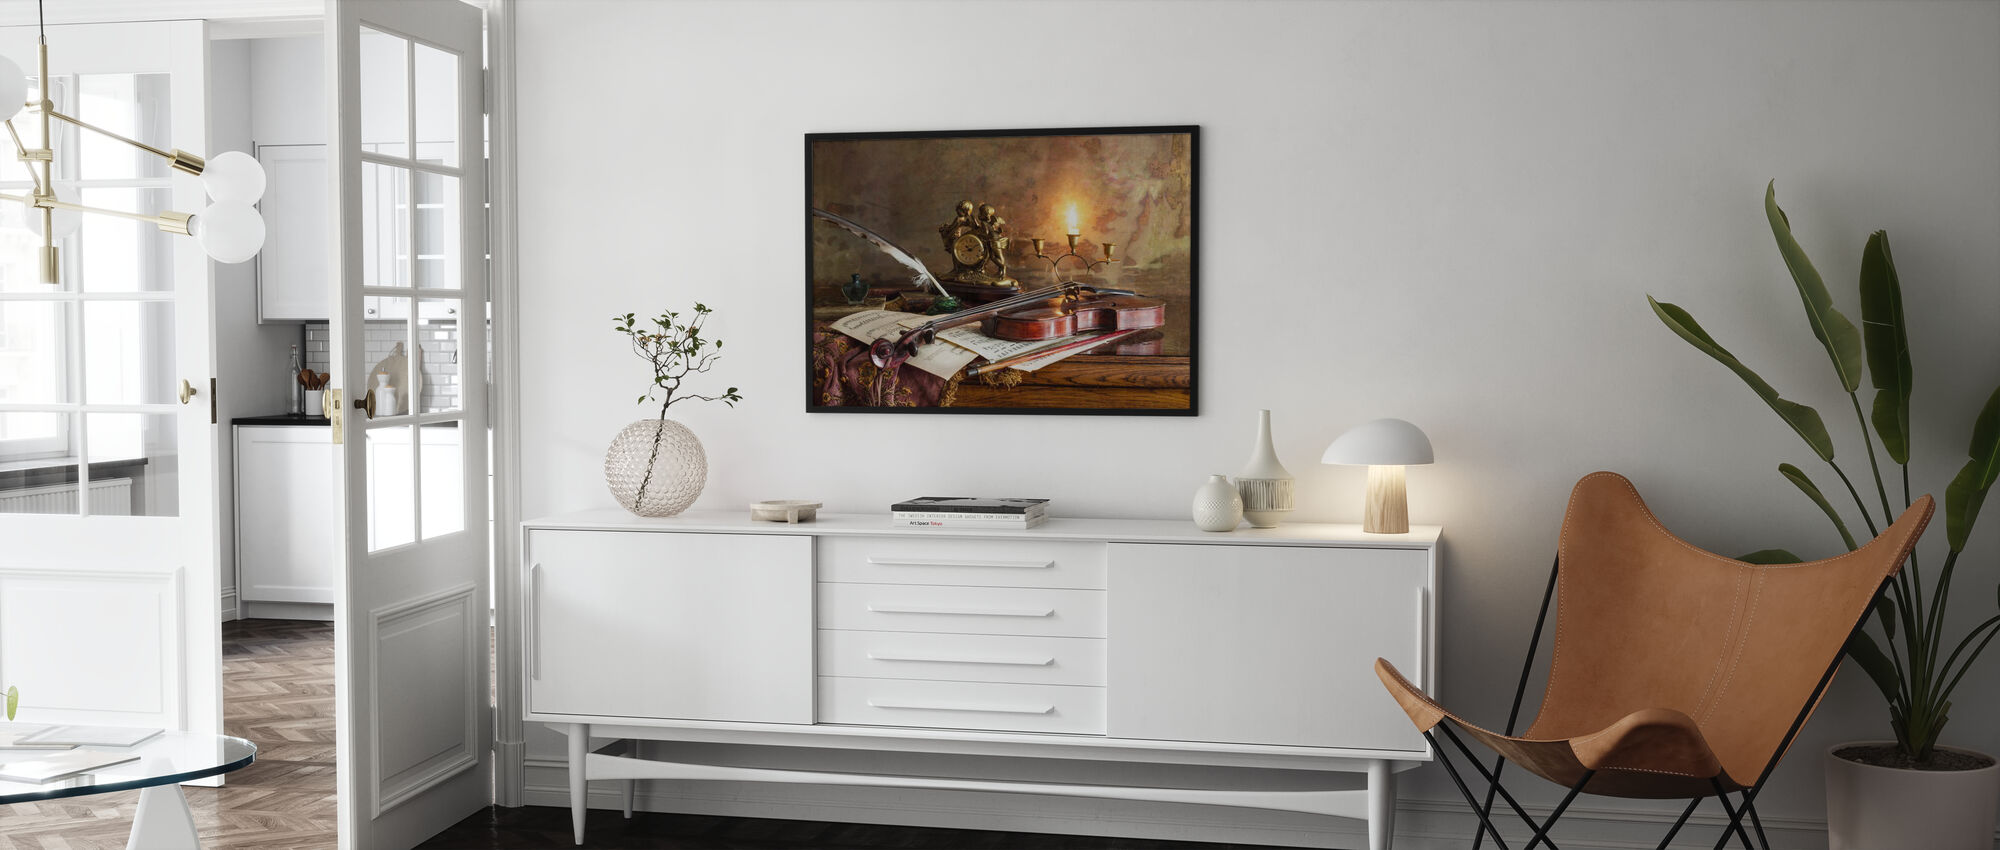 Still Life with Violin and Clock - Poster - Living Room